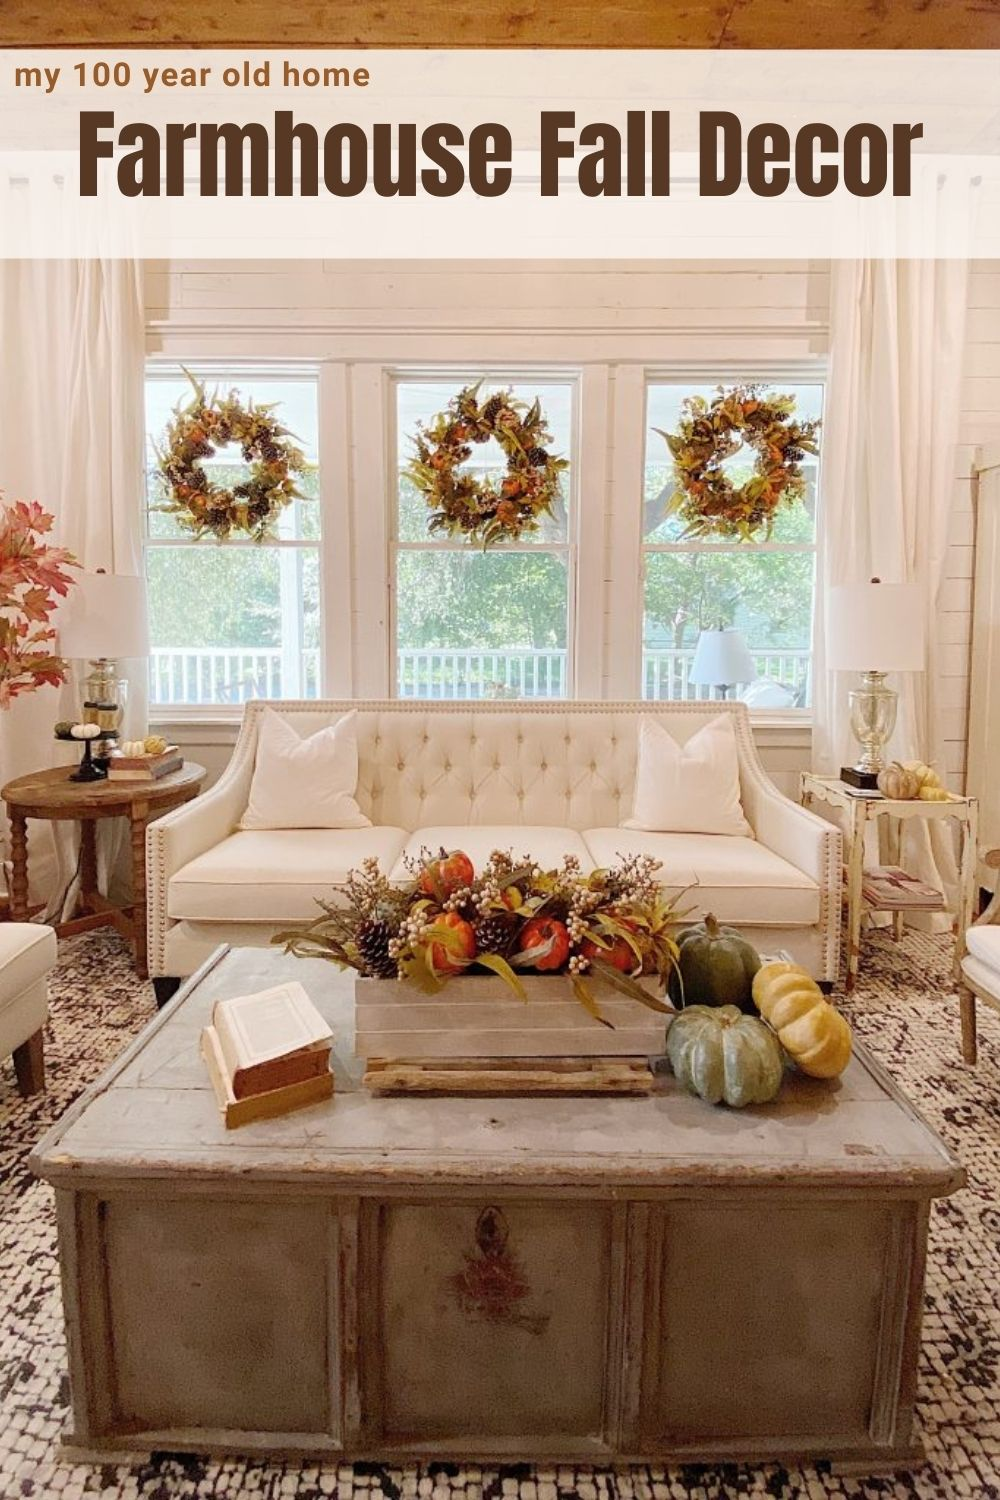 I love adding fall farmhouse decor colors to our living room. The wreaths, tree, arrangement, and pumpkins are perfect for our Waco home.